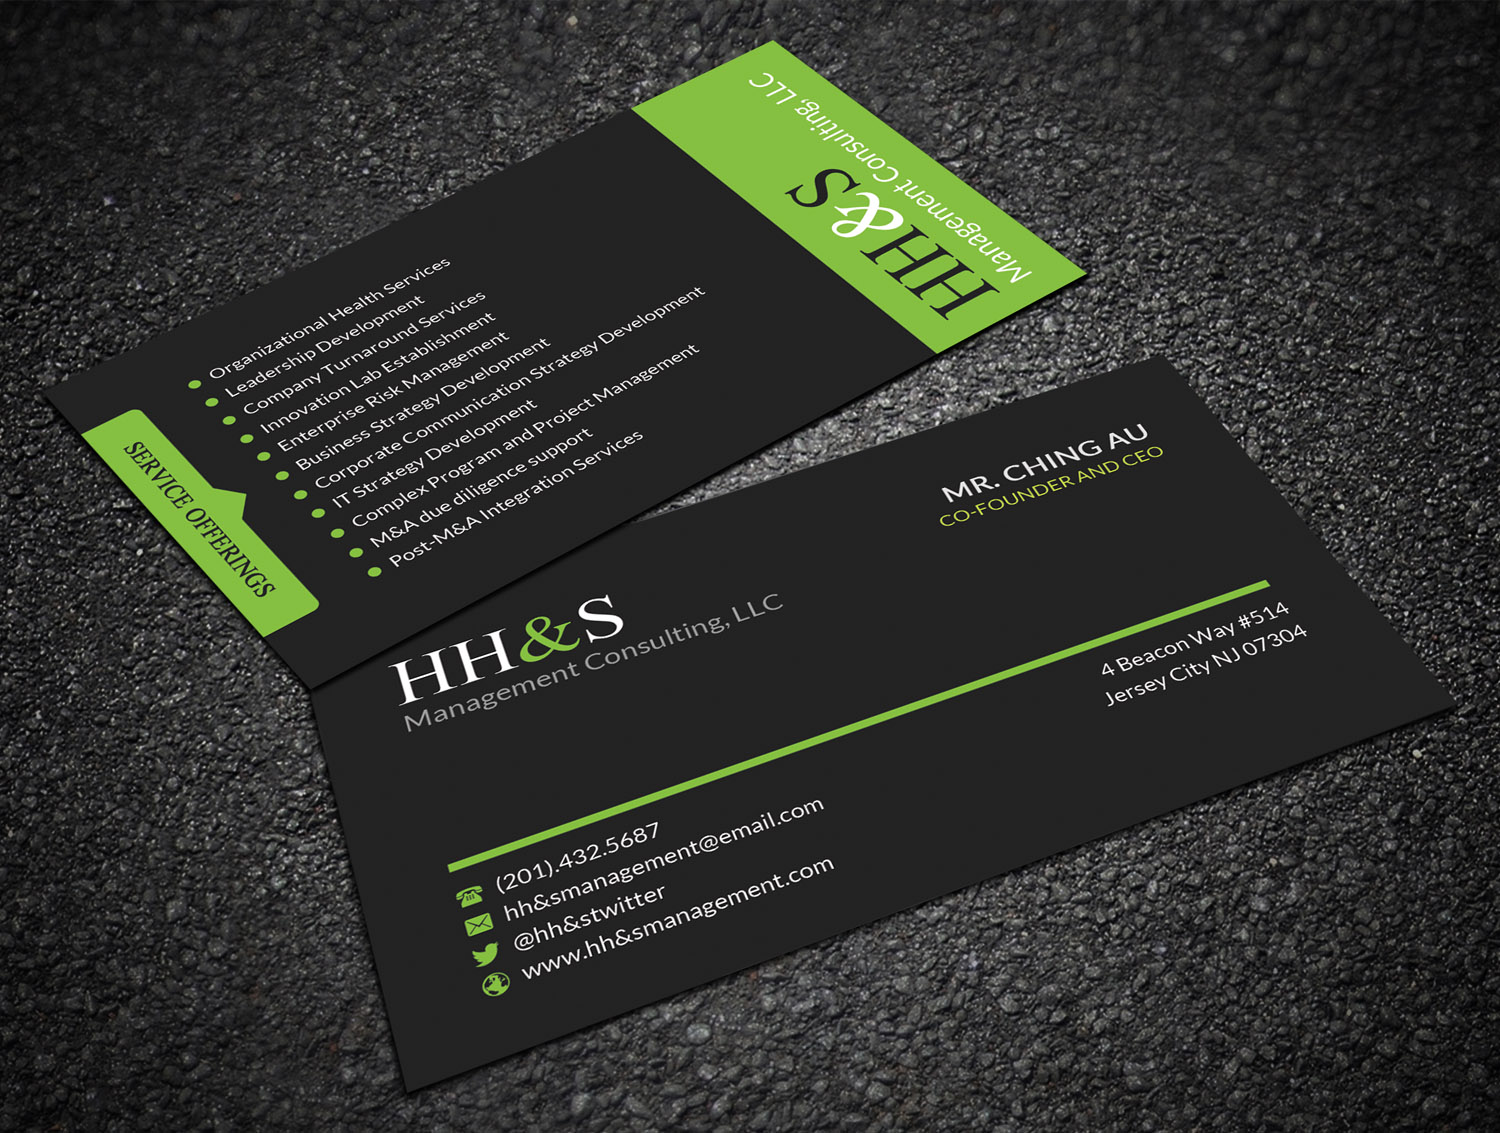 Business card design for hhs management consulting llc by business card design by sandaruwan for business card design project design 15212767 reheart Choice Image